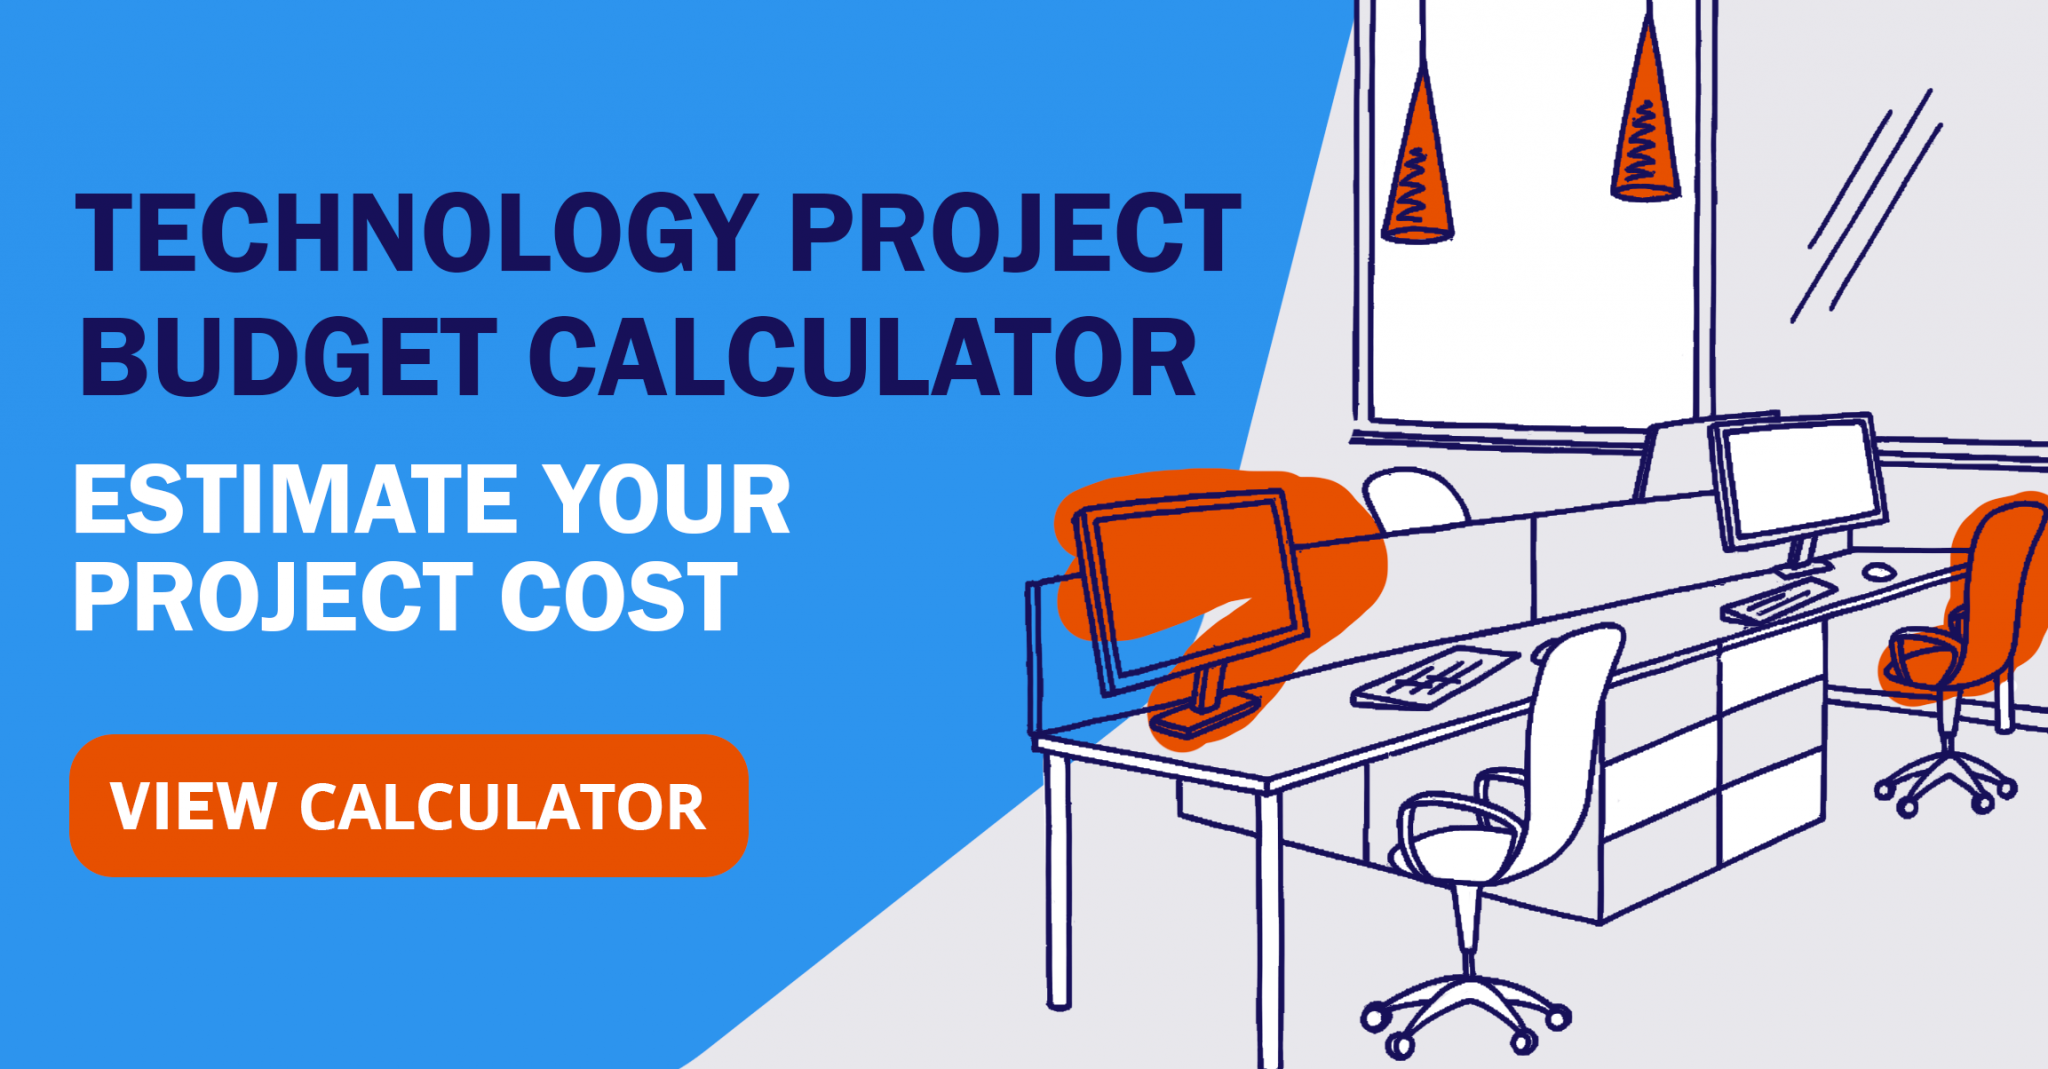 Technology Project Budget Calculator - Estimate  Your Project Cost